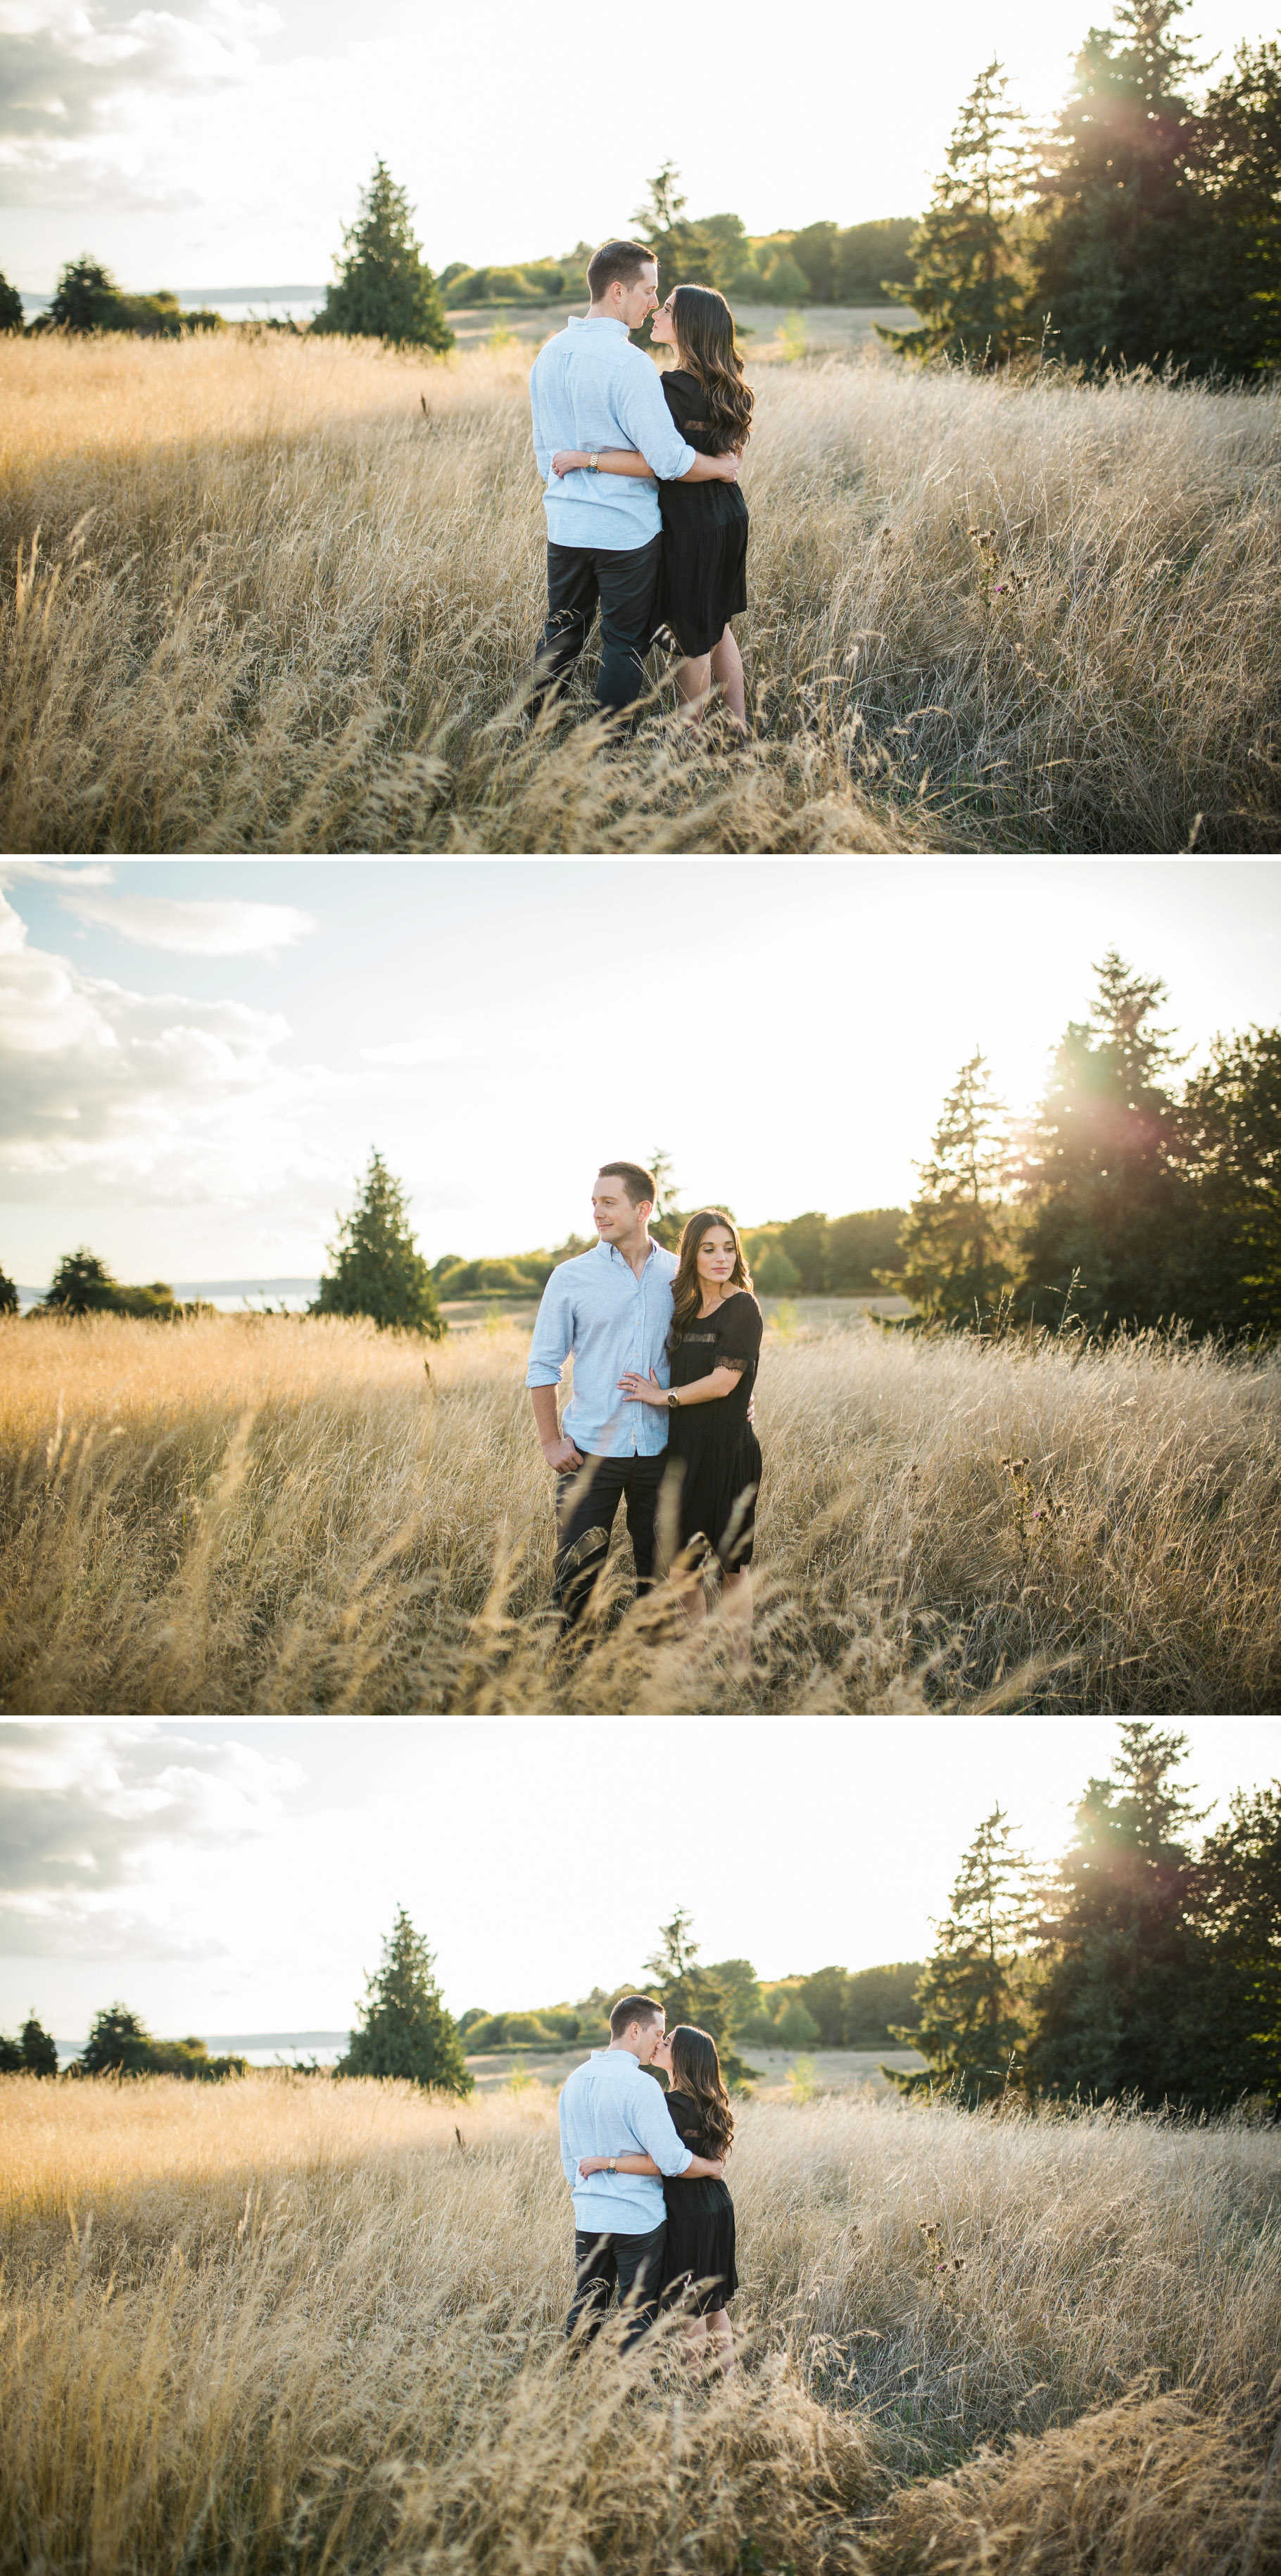 Discovery-Park-Seattle-Engagment-Photographer-Wedding-Photography-by-Betty-Elaine_0012